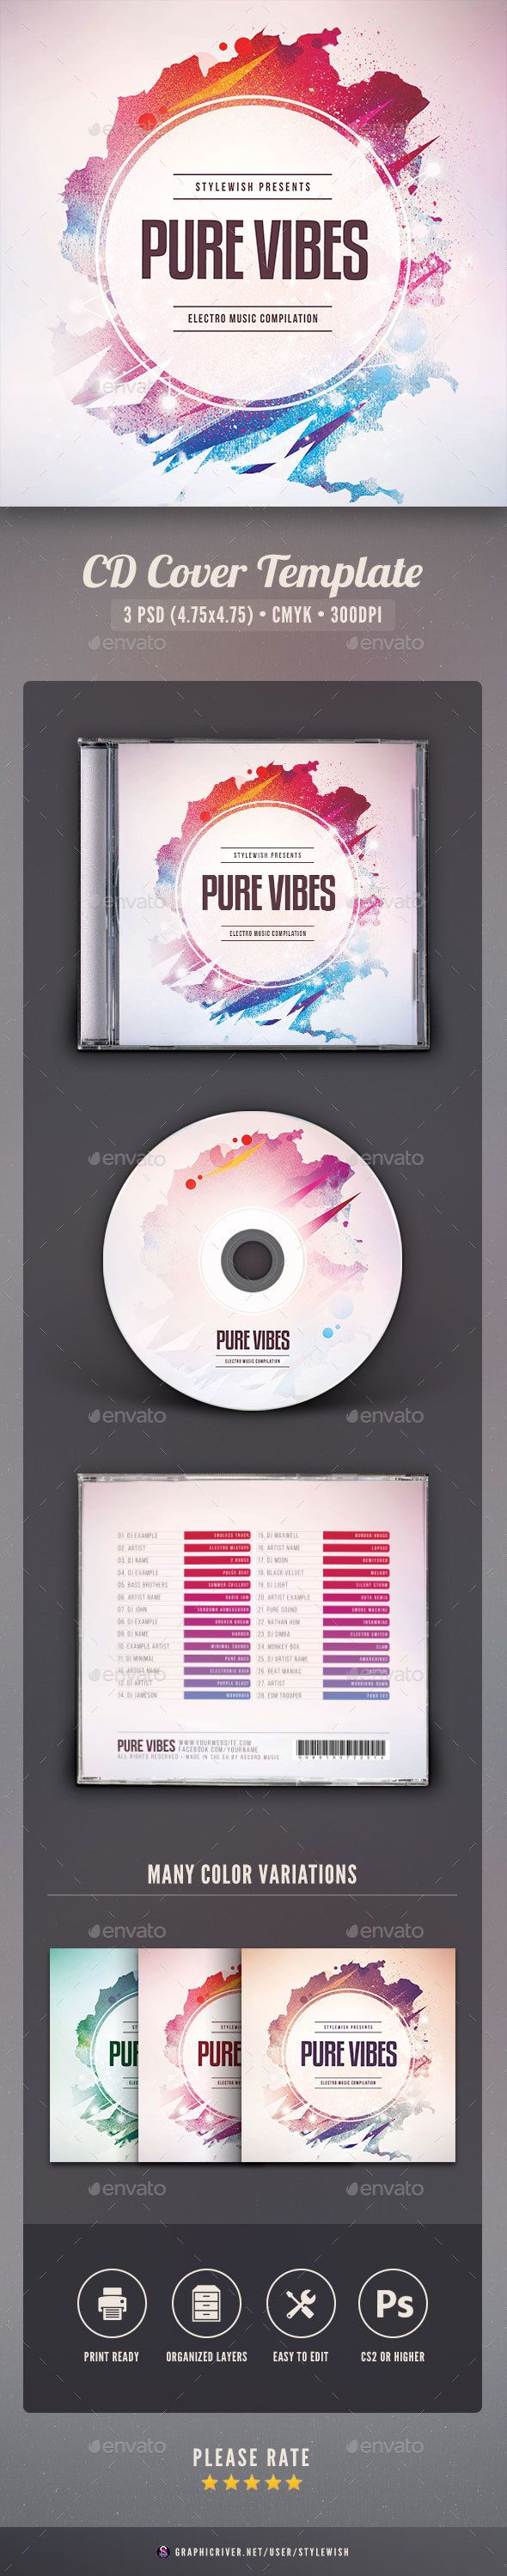 Pure Vibes CD Cover Artwork   Cd cover, Artwork and Cd cover template